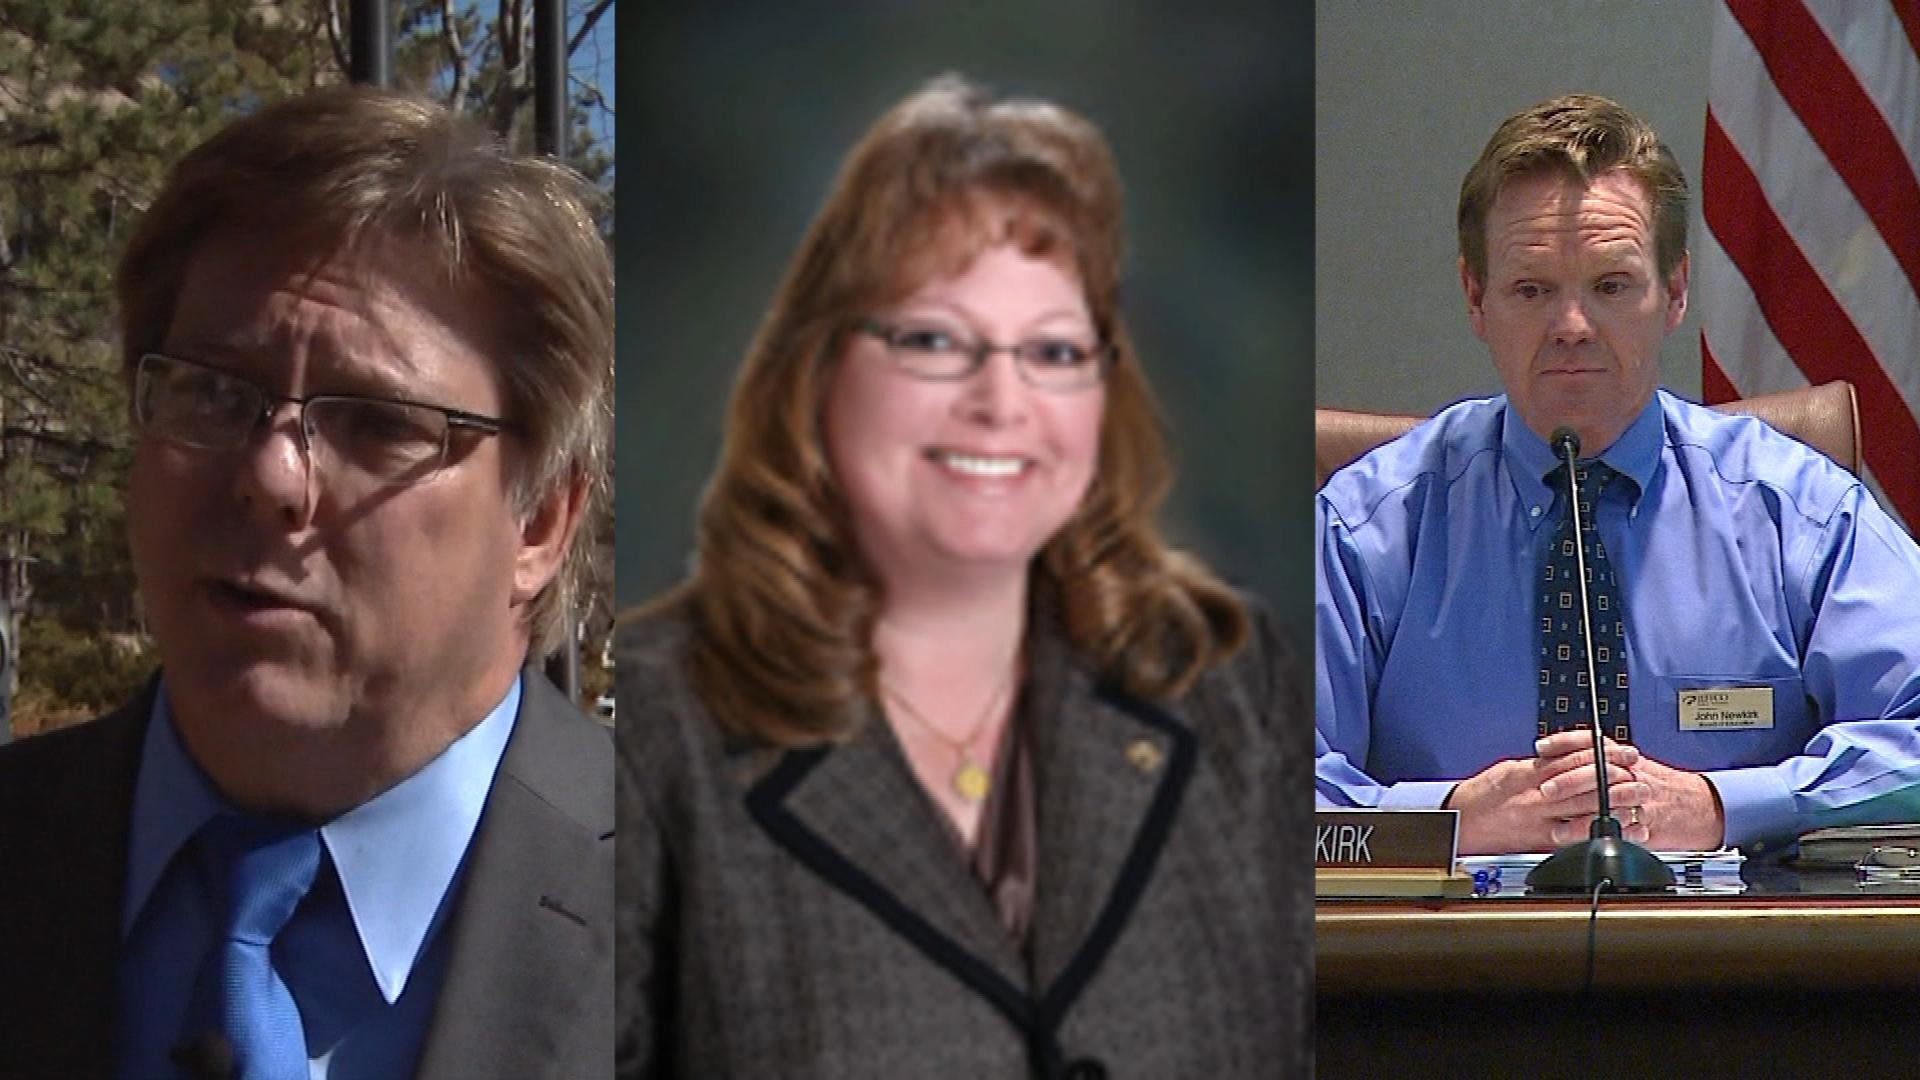 Ken Witt, Julie Williams and John Newkirk (credit: CBS)